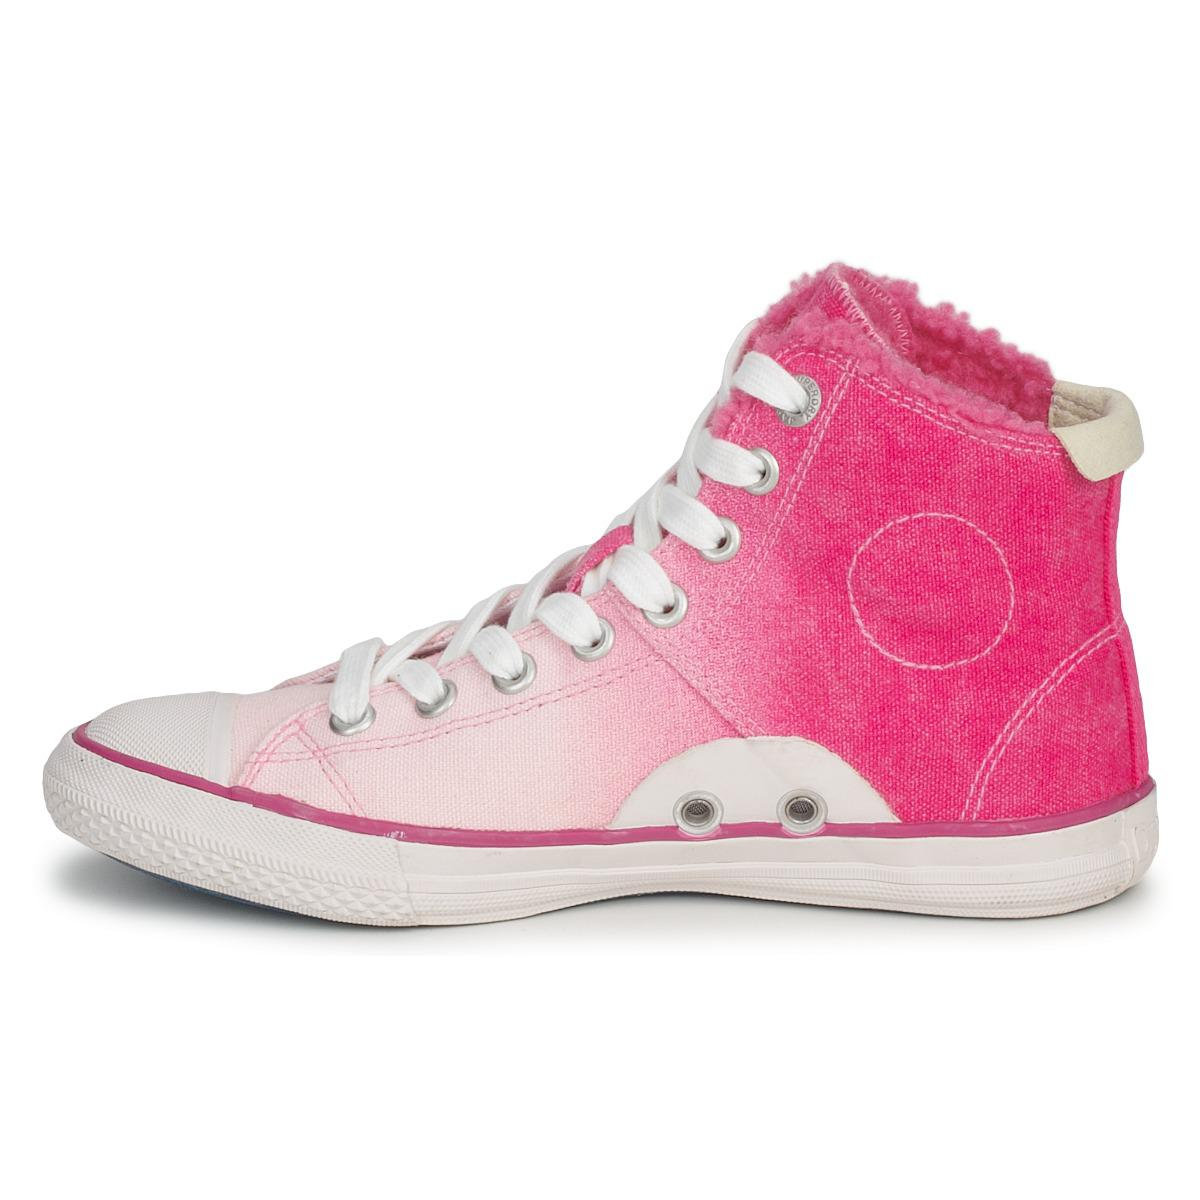 Superdry Super Series High Women's Shoes (high-top Trainers) In Pink